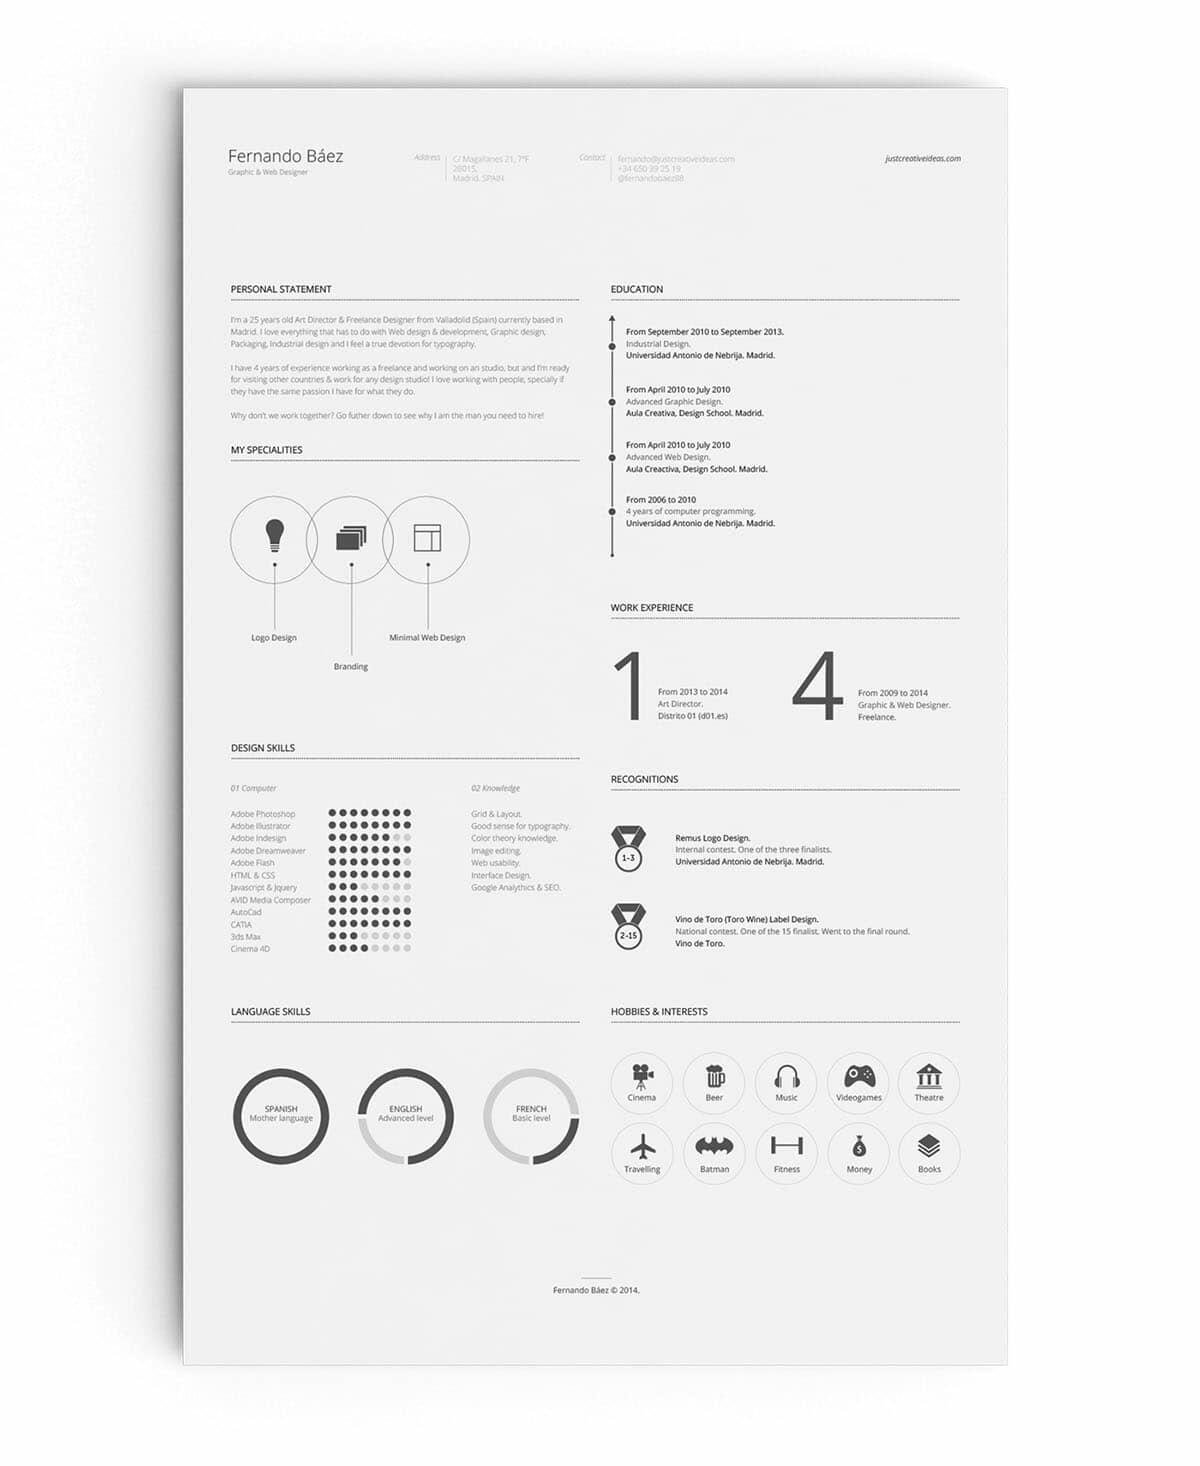 Free Sample Resume Templates Examples: Free Resume Templates: 17+ Free CV Templates To Download & Use